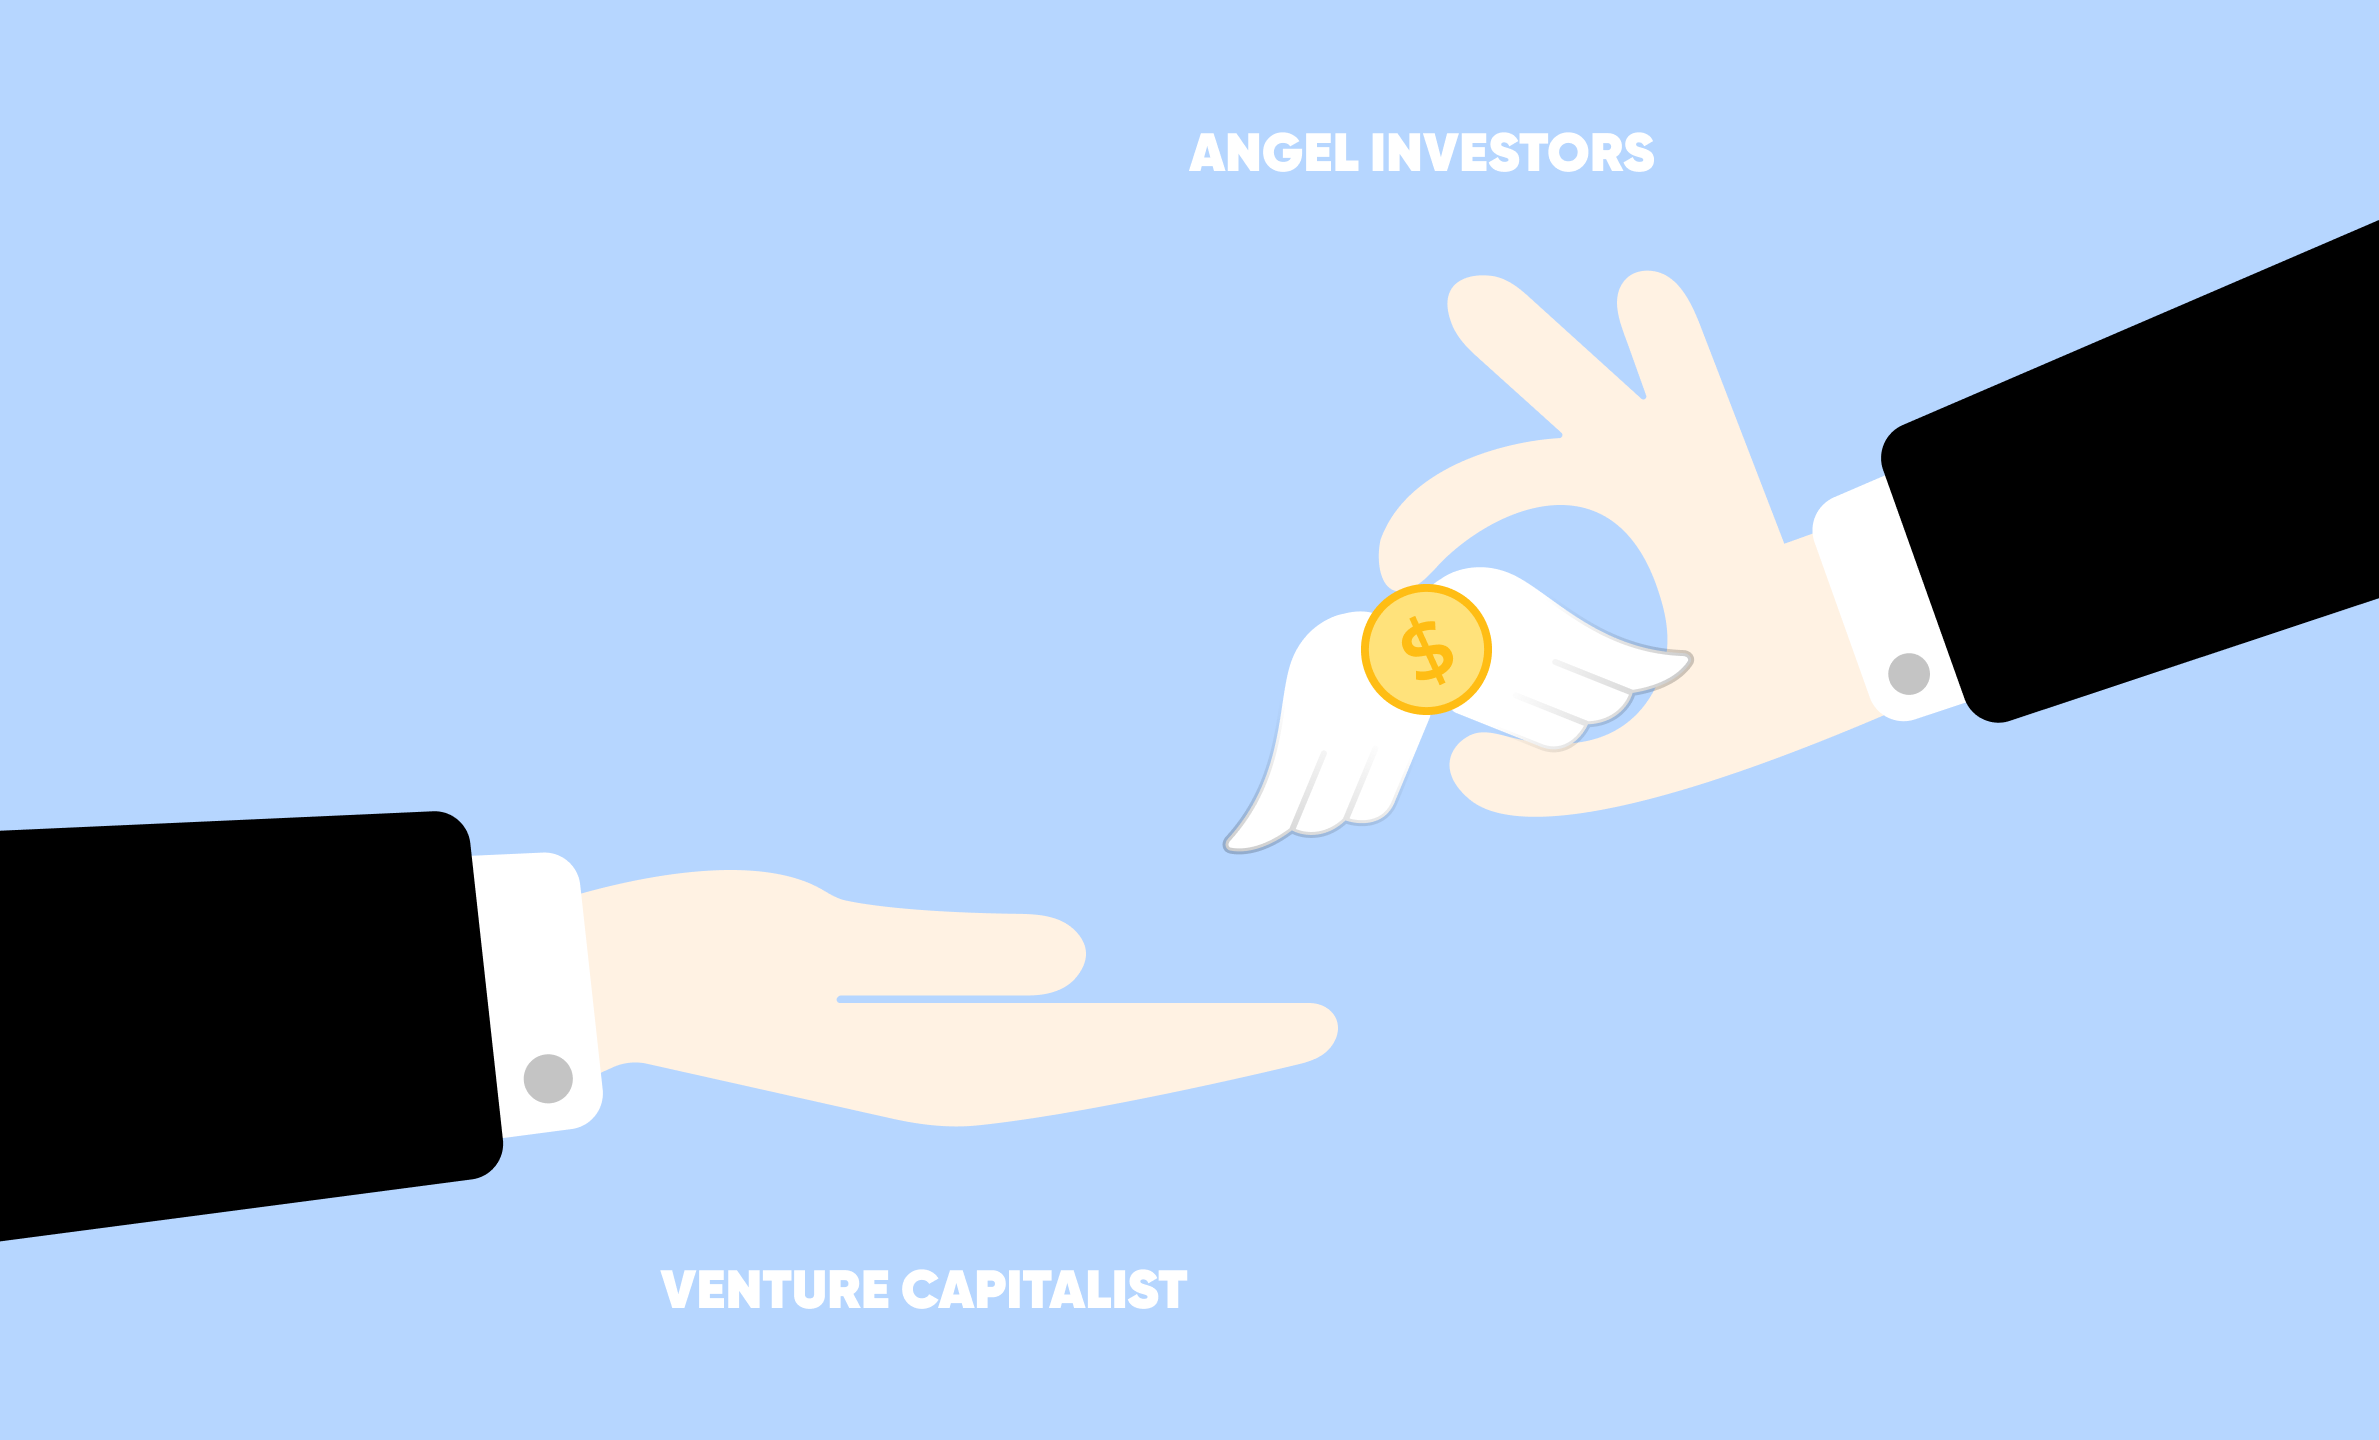 Two hands holding a coin as a metaphor of NYC angel investors